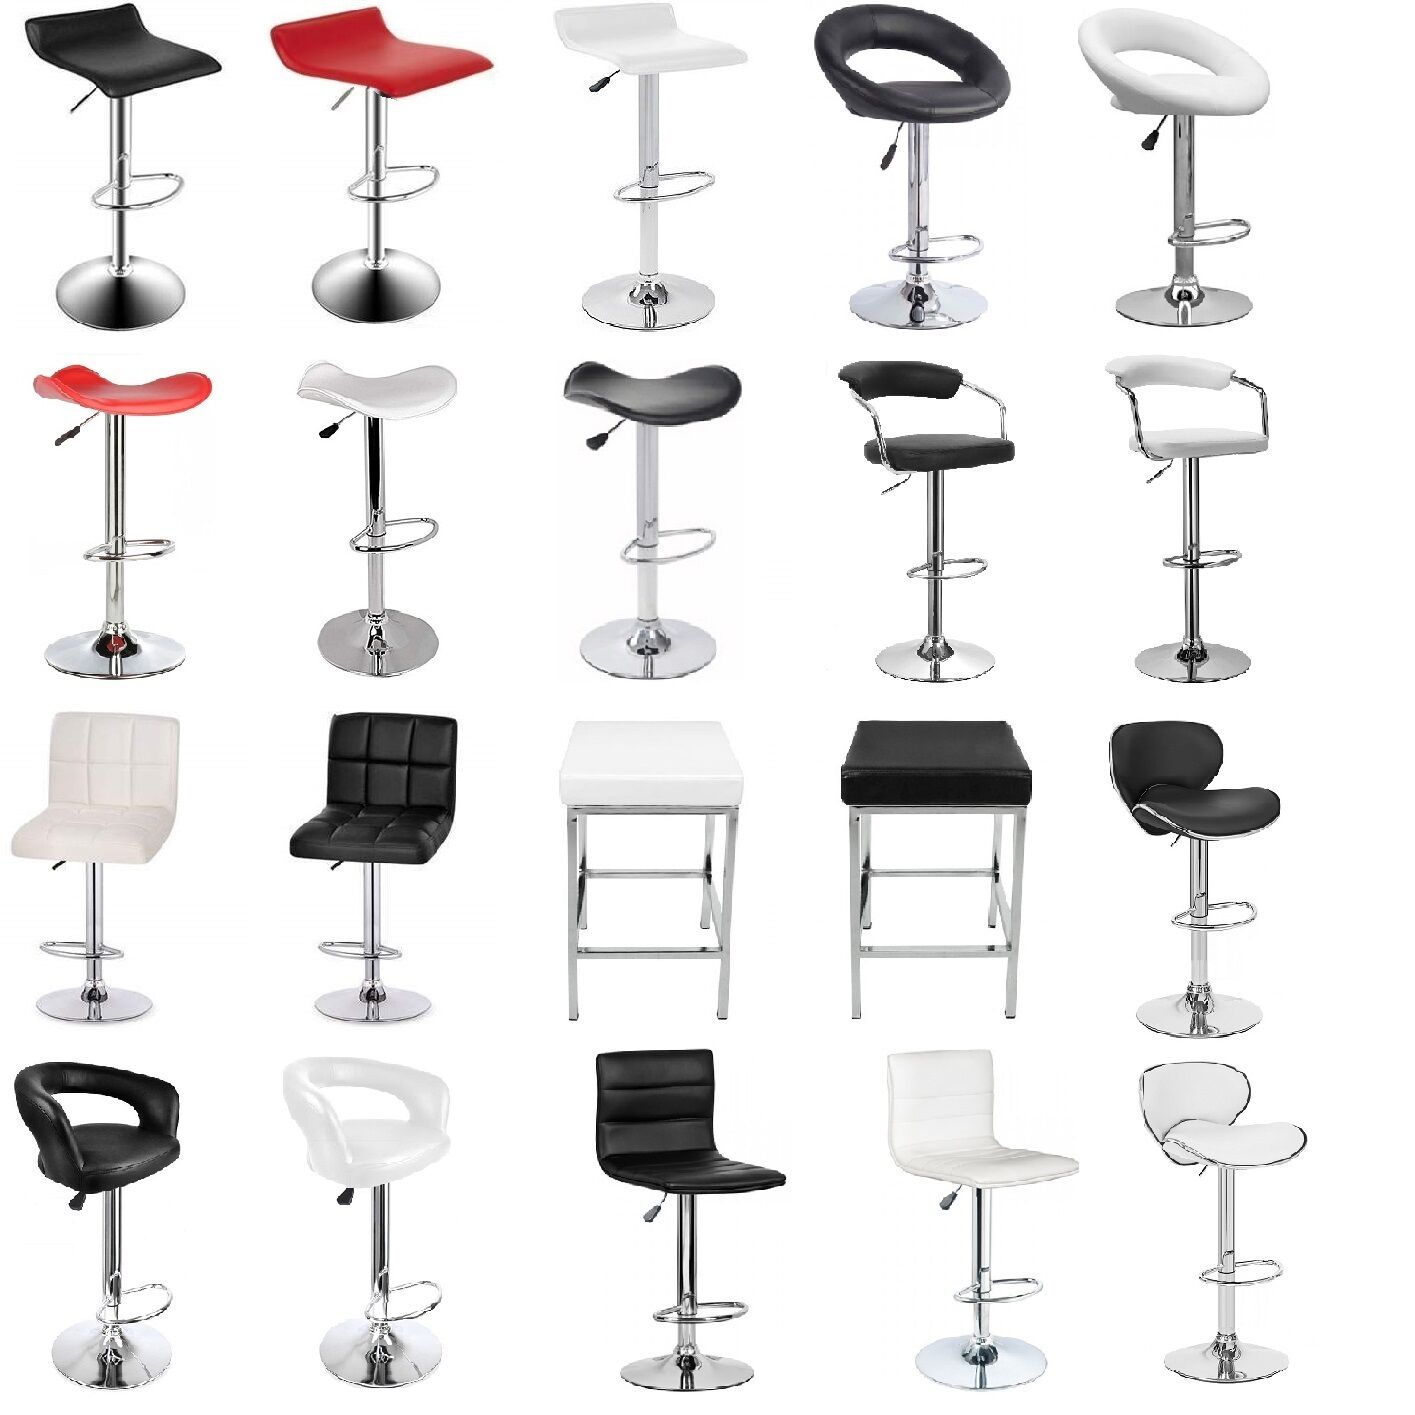 4X New PU PVC Leather Bar Stool Kitchen Chair Gas Lift  : s l1600 from www.ebay.com size 1415 x 1415 jpeg 137kB